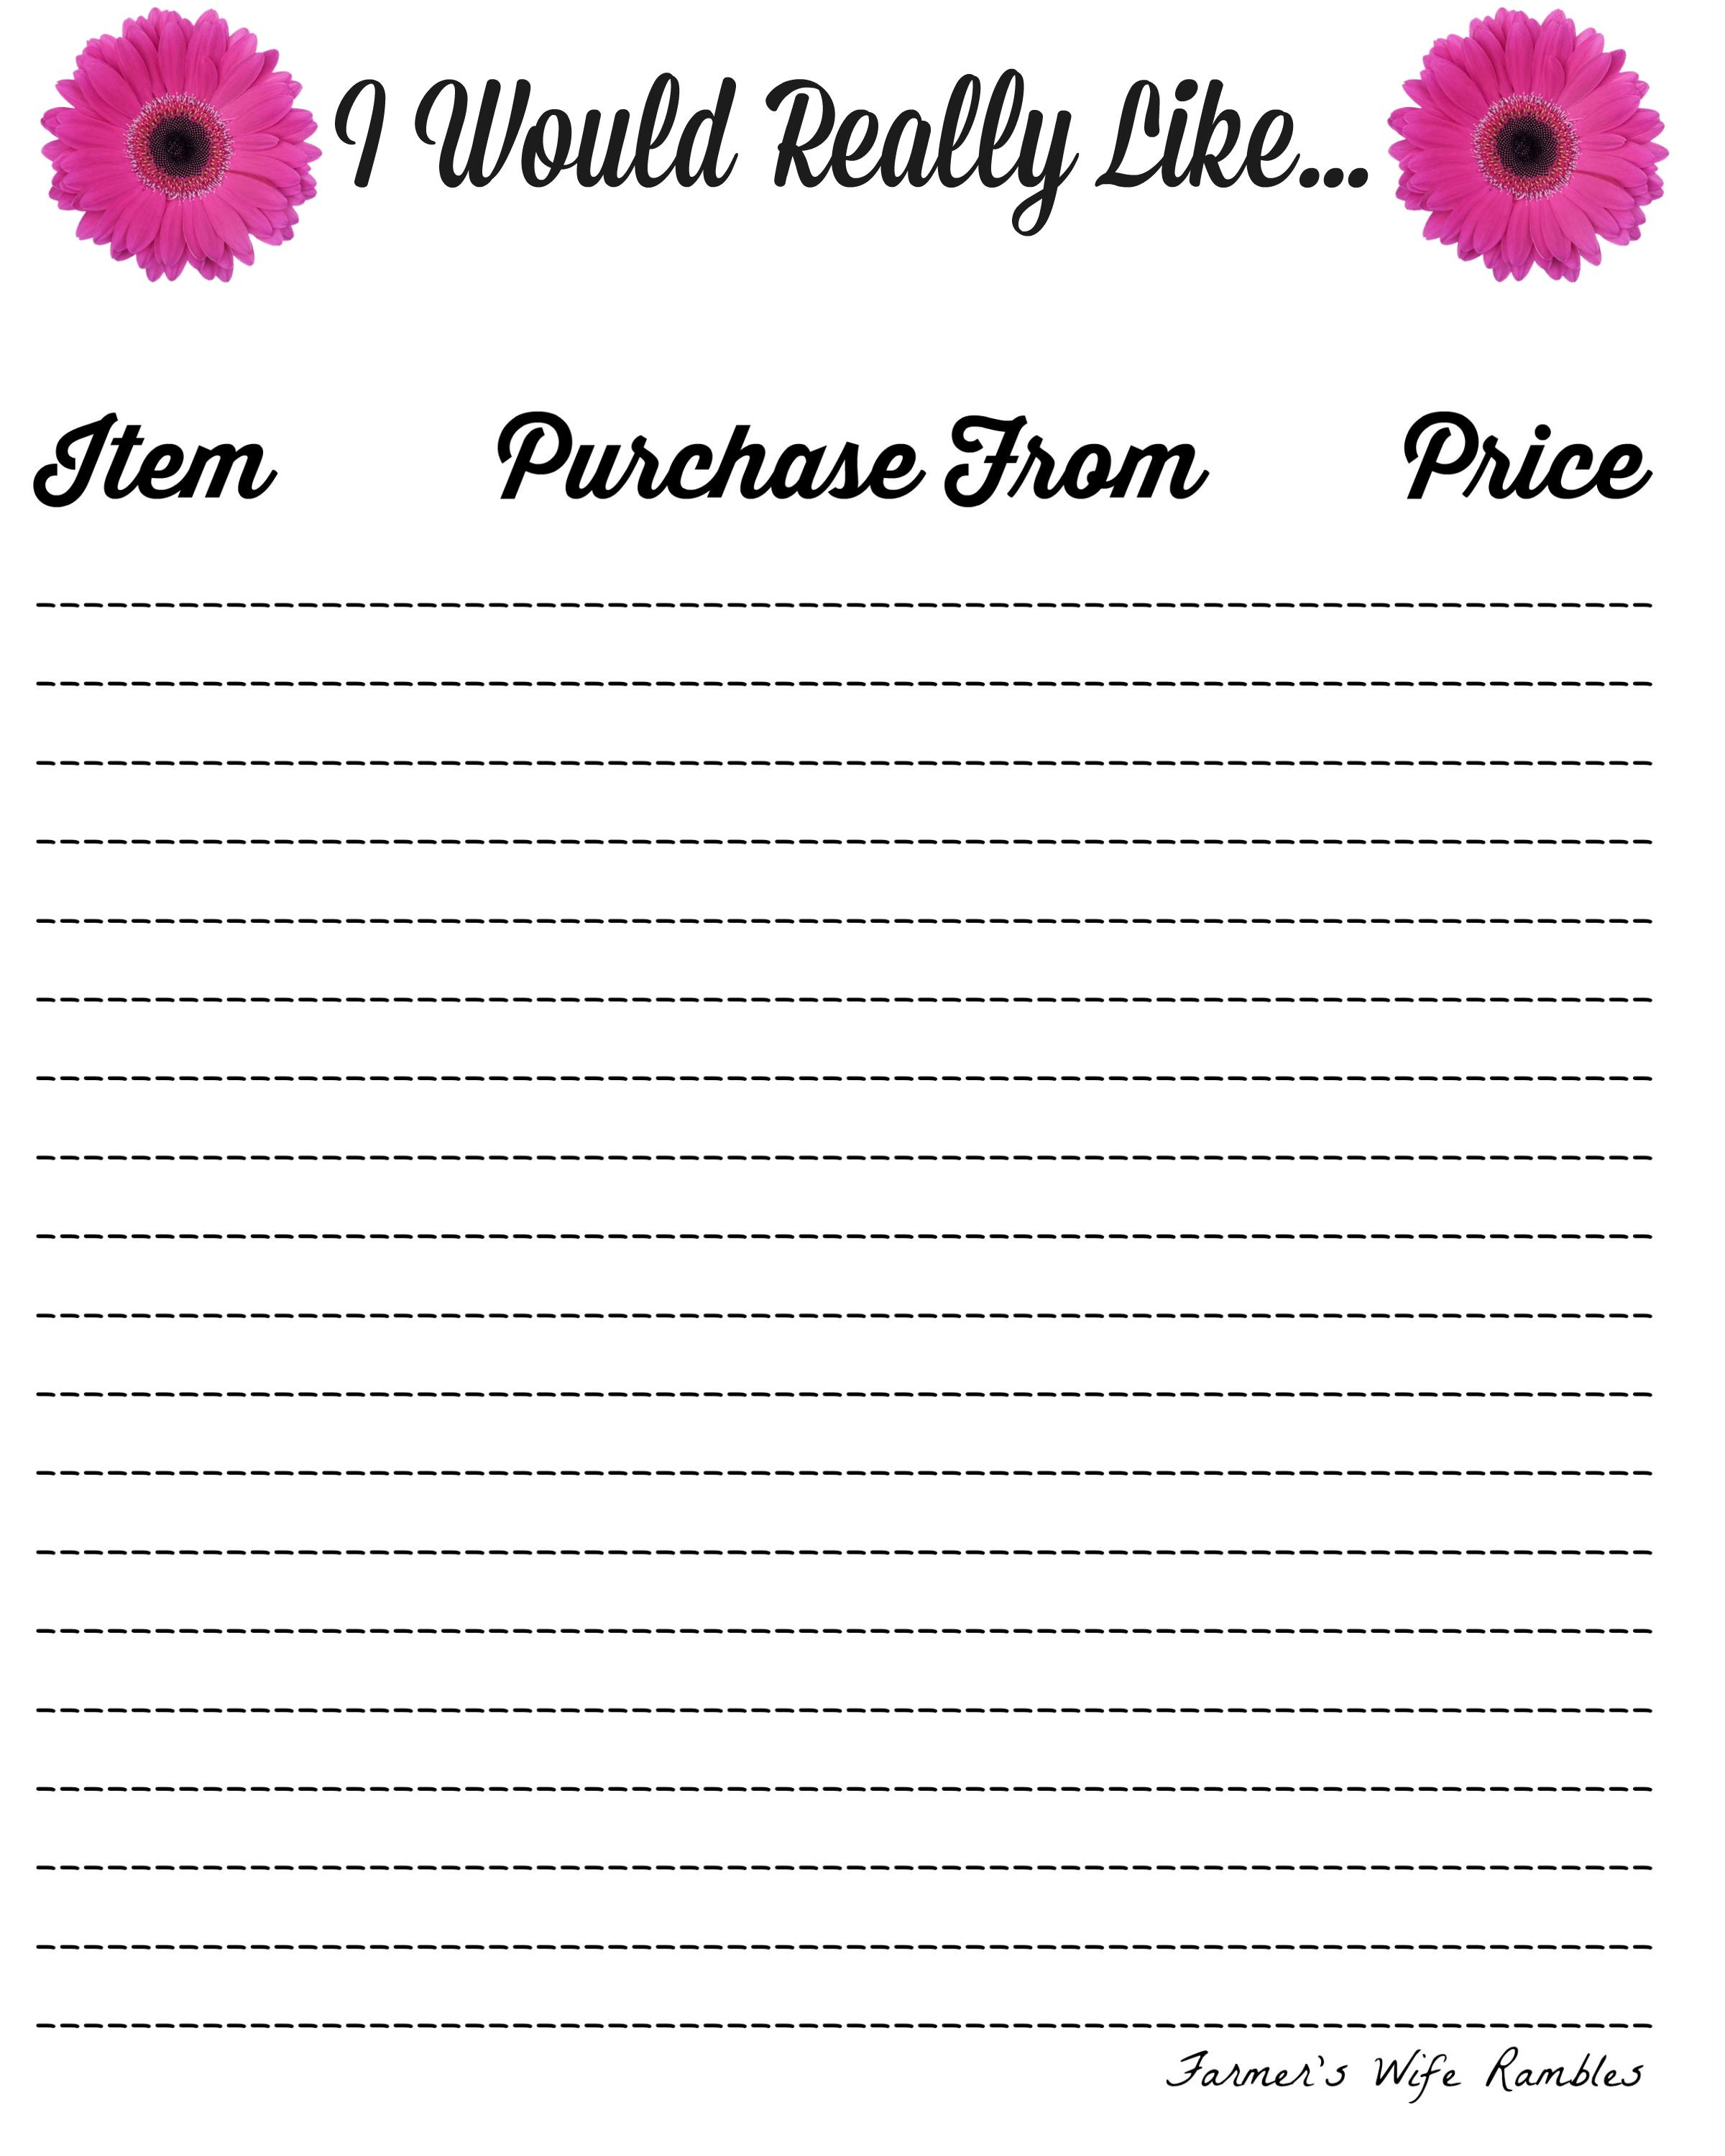 birthday wish list template printable ; I-Would-Really-Like-Pink-Daisies